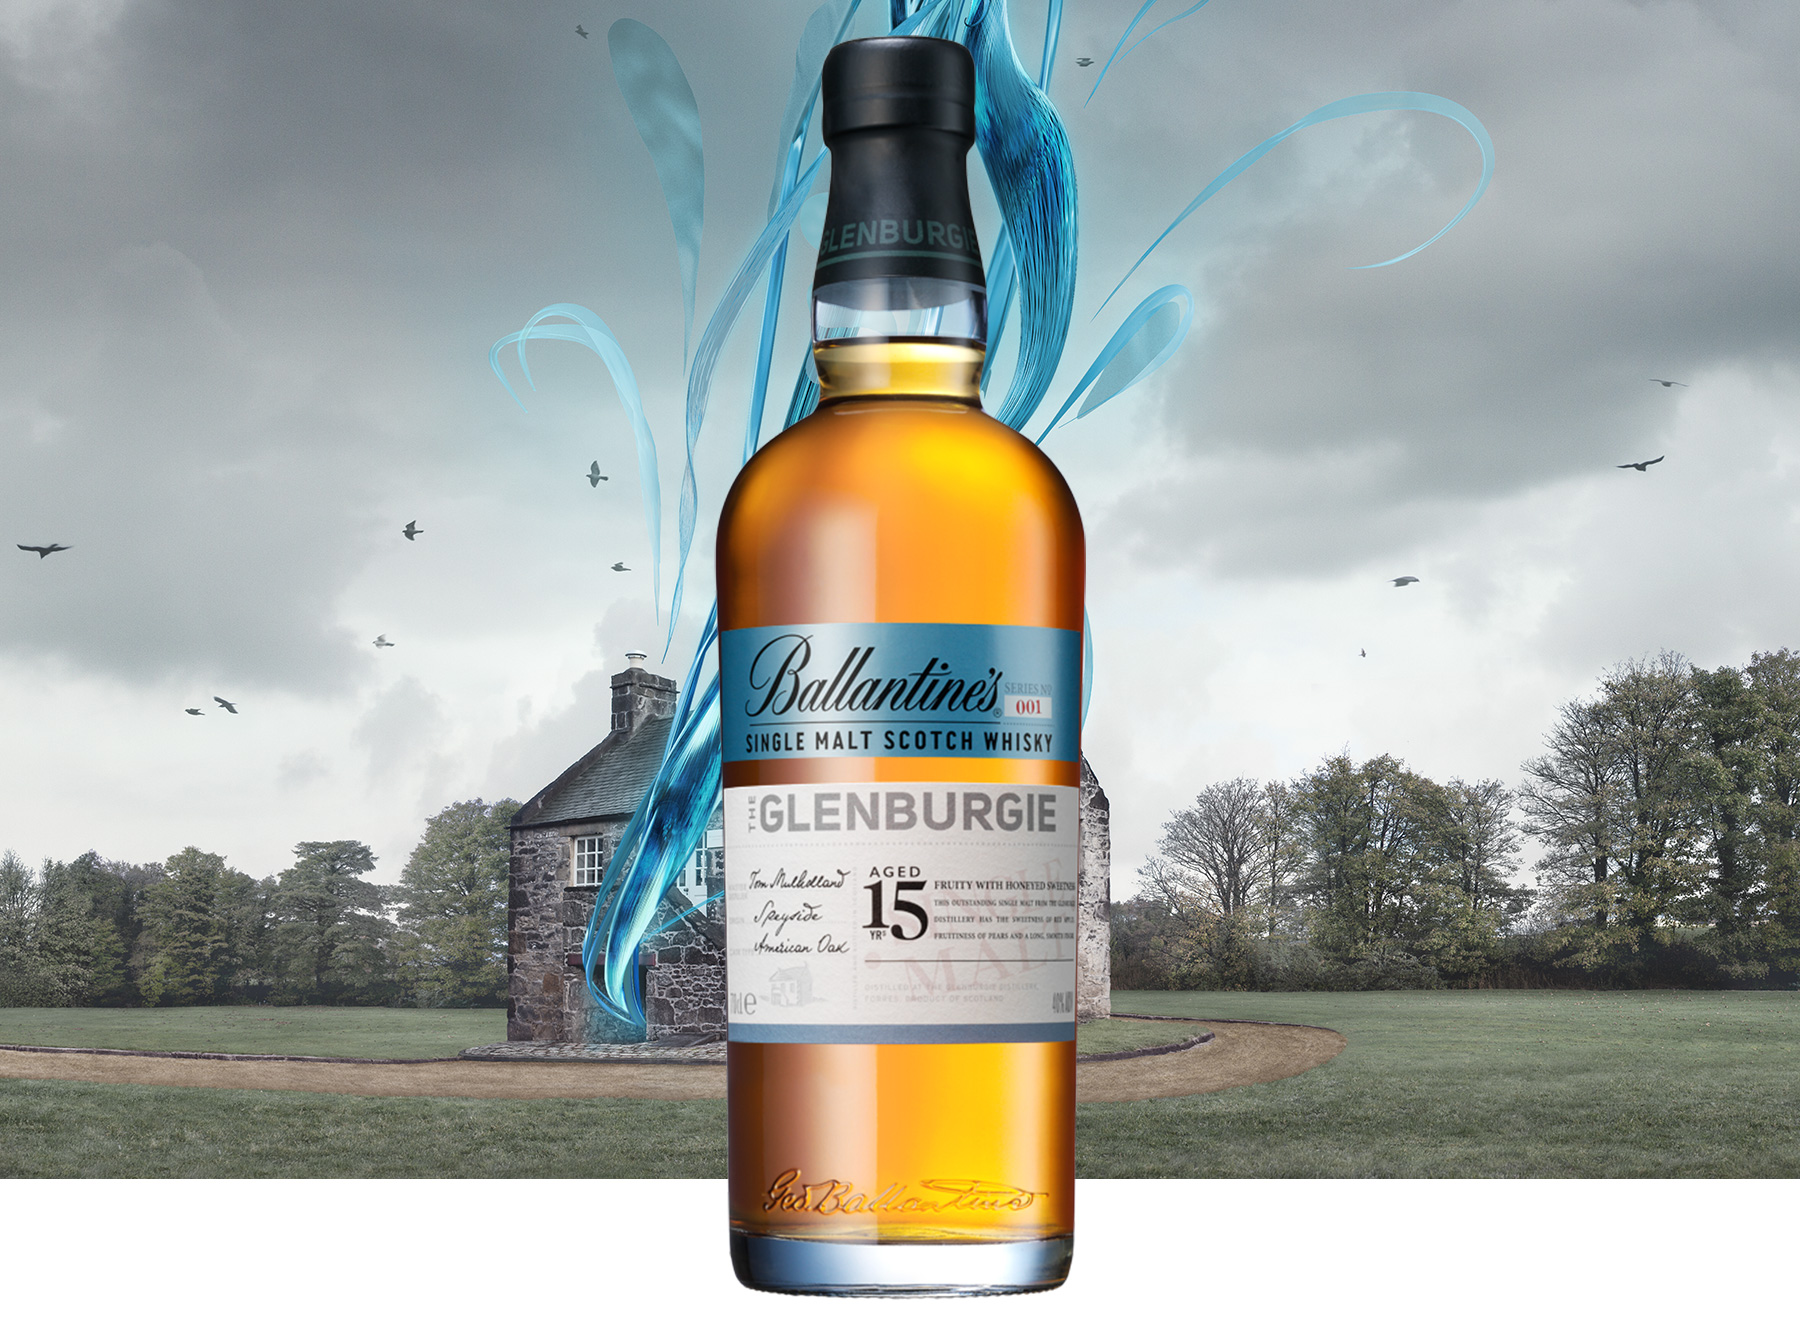 Glenburgie Single Malt